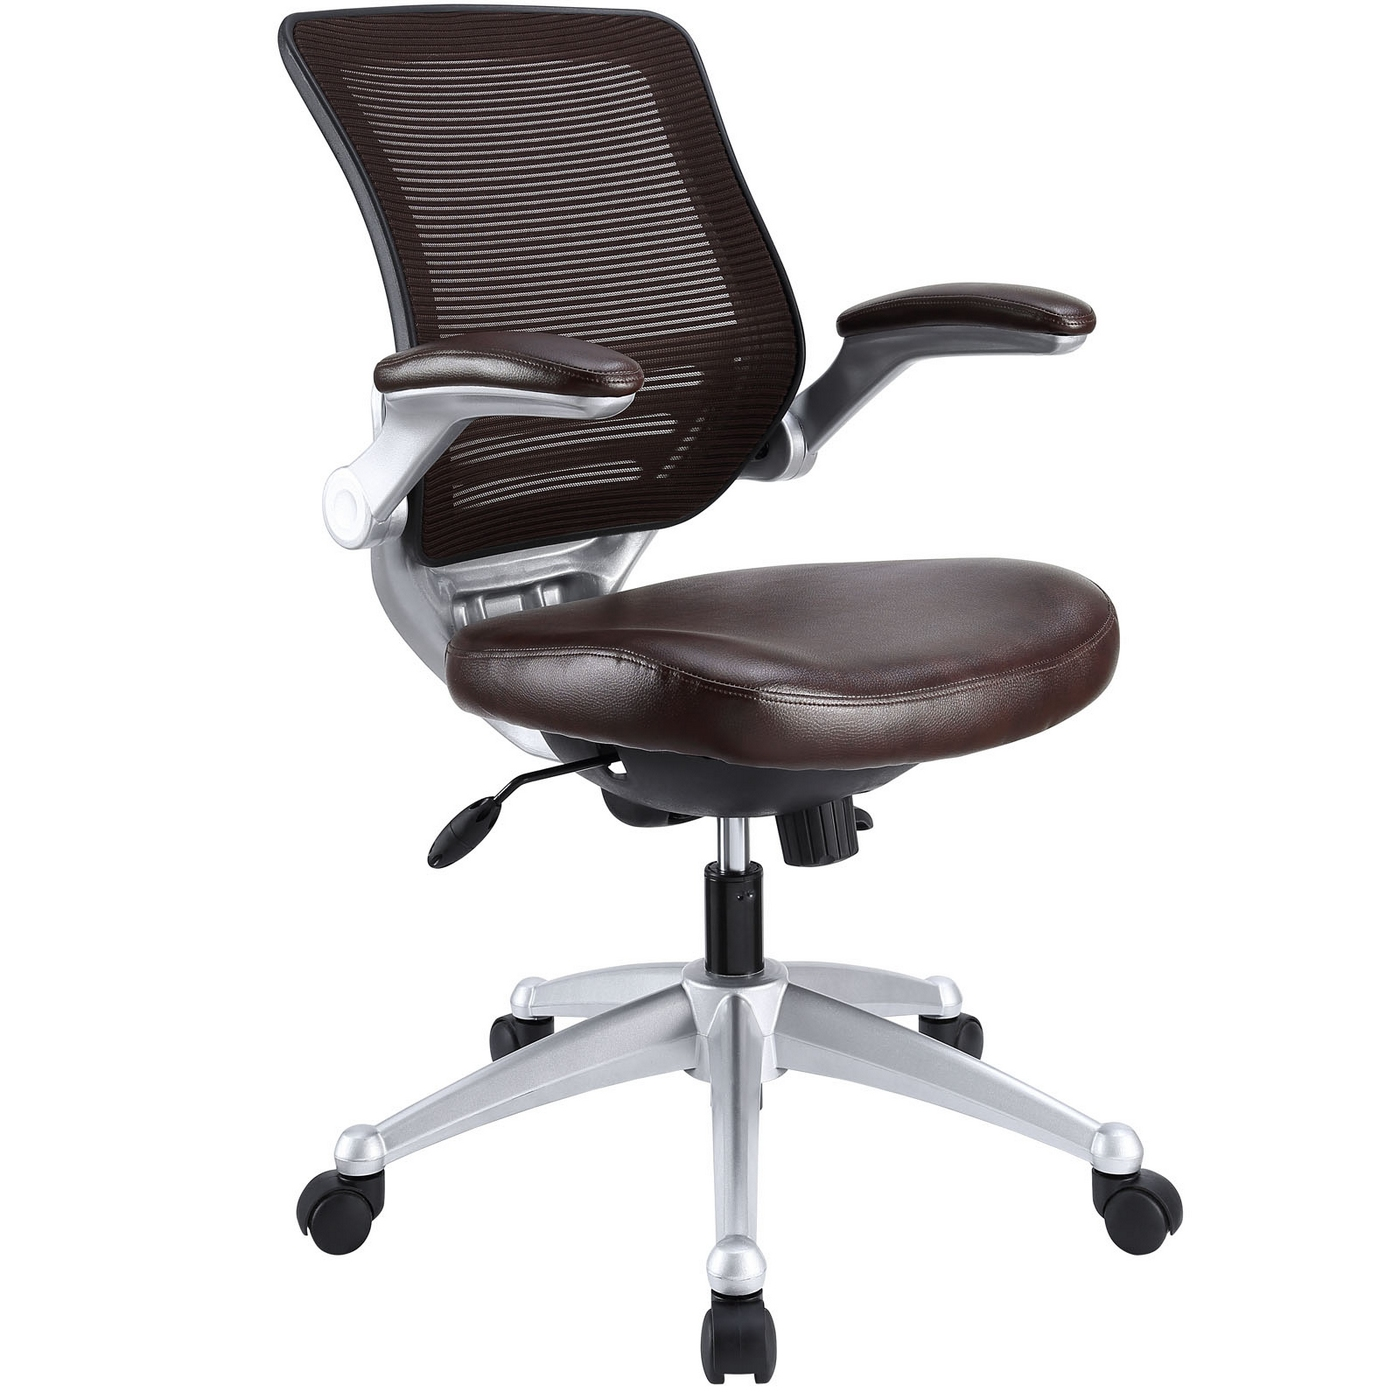 Edge Modern Adjustable Ergonomic Leather Office Chair W Mesh Back Brown